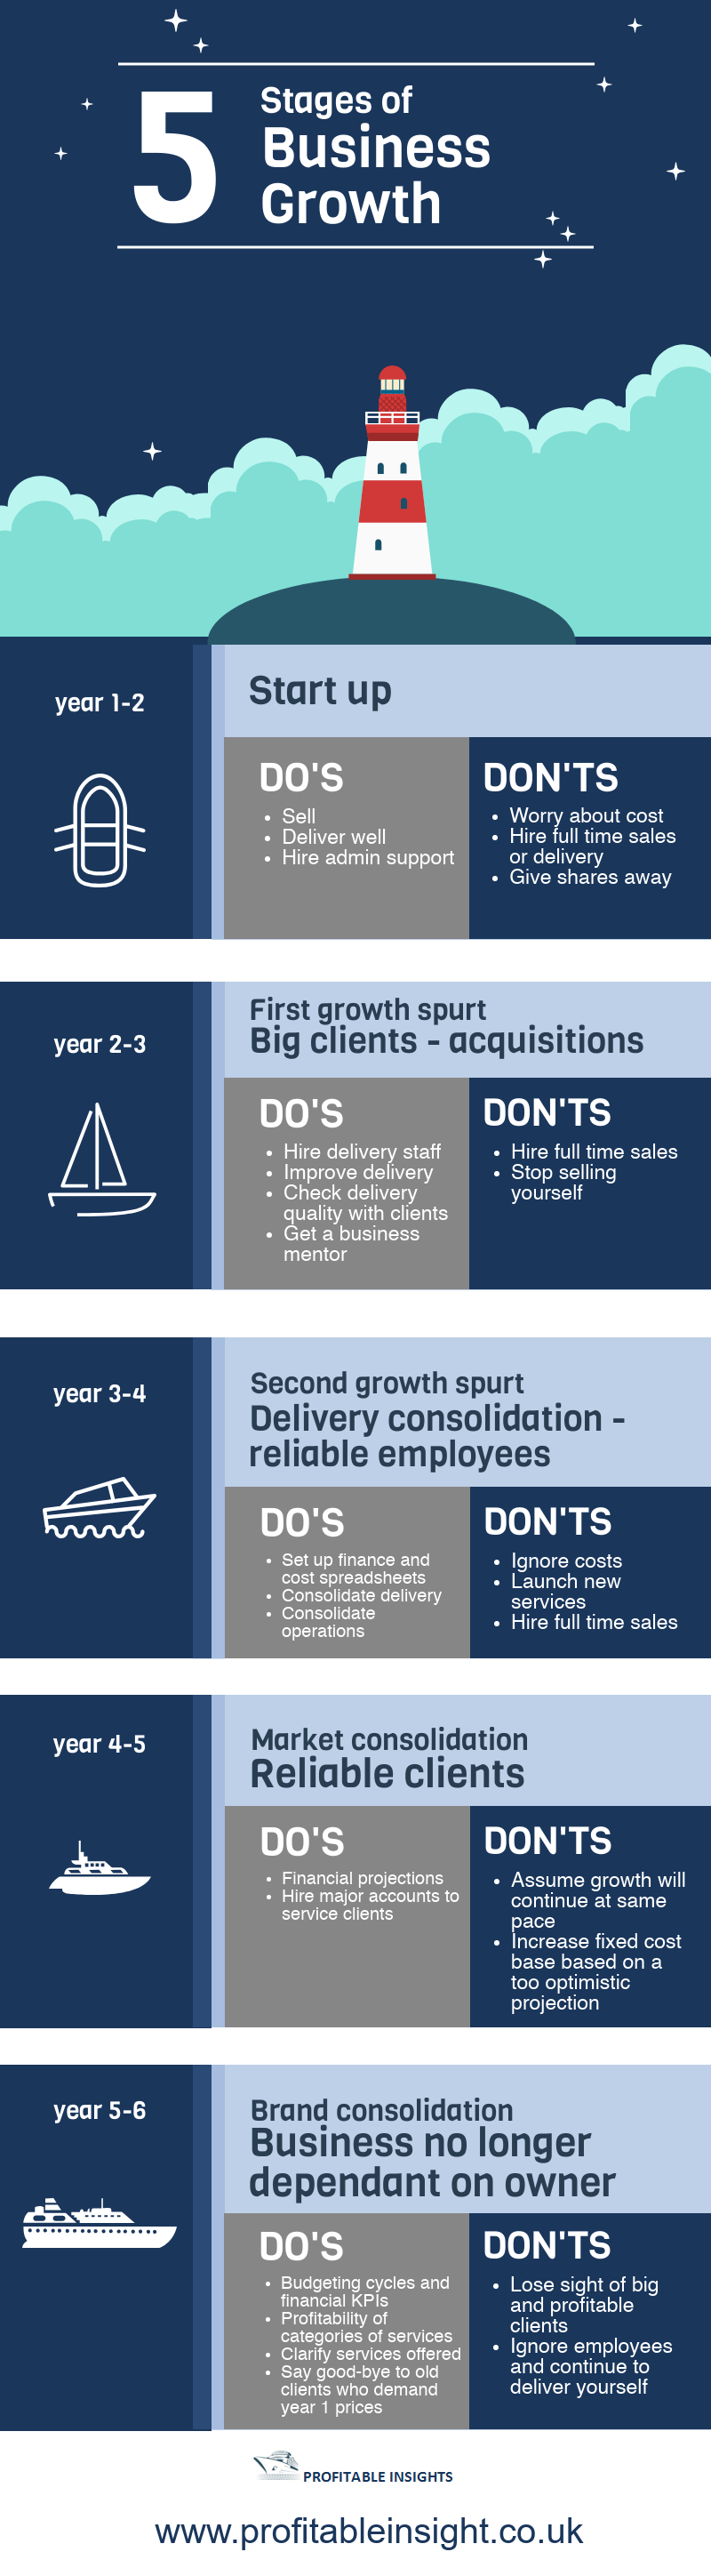 5 Stages of Business Growth by Profitableinsights.co.uk